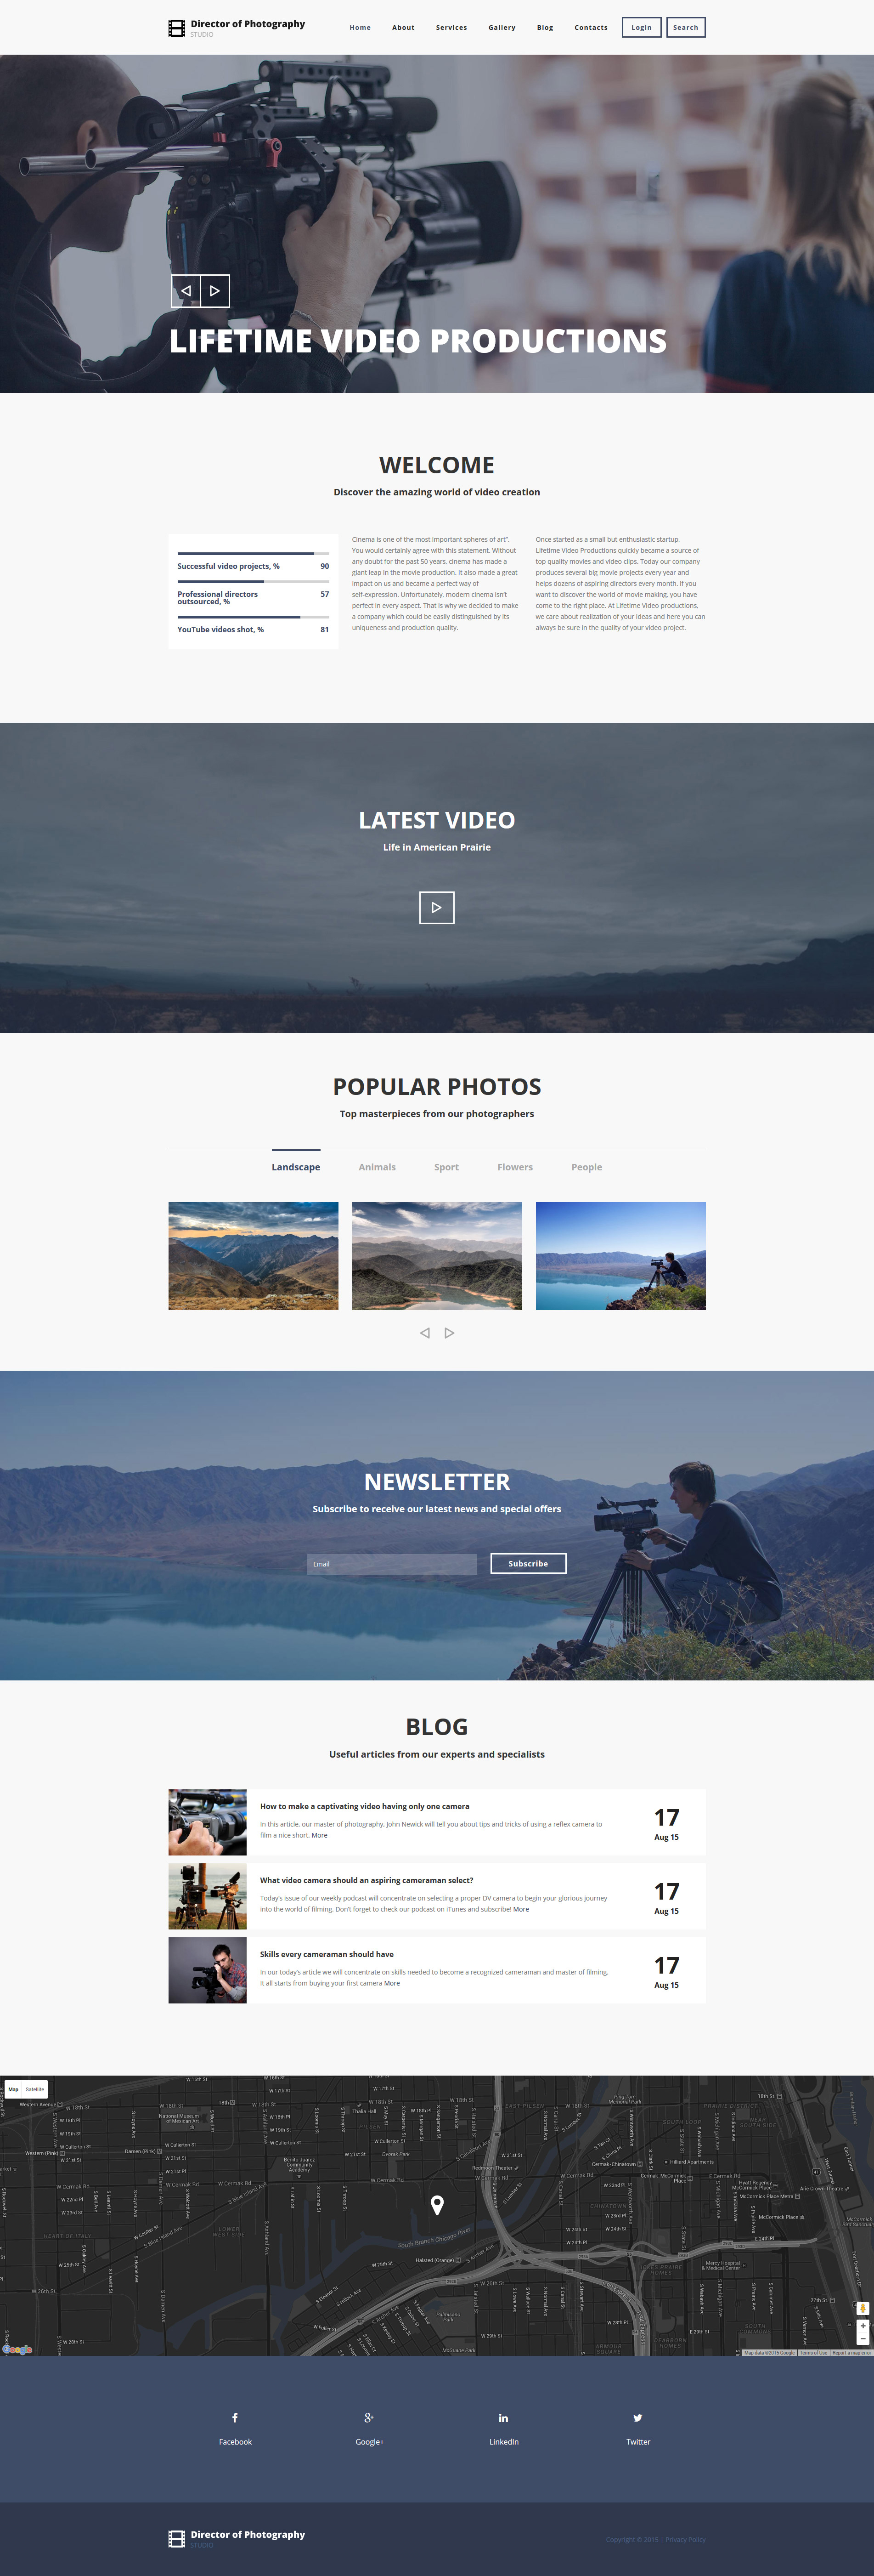 Photography Director Drupal Template